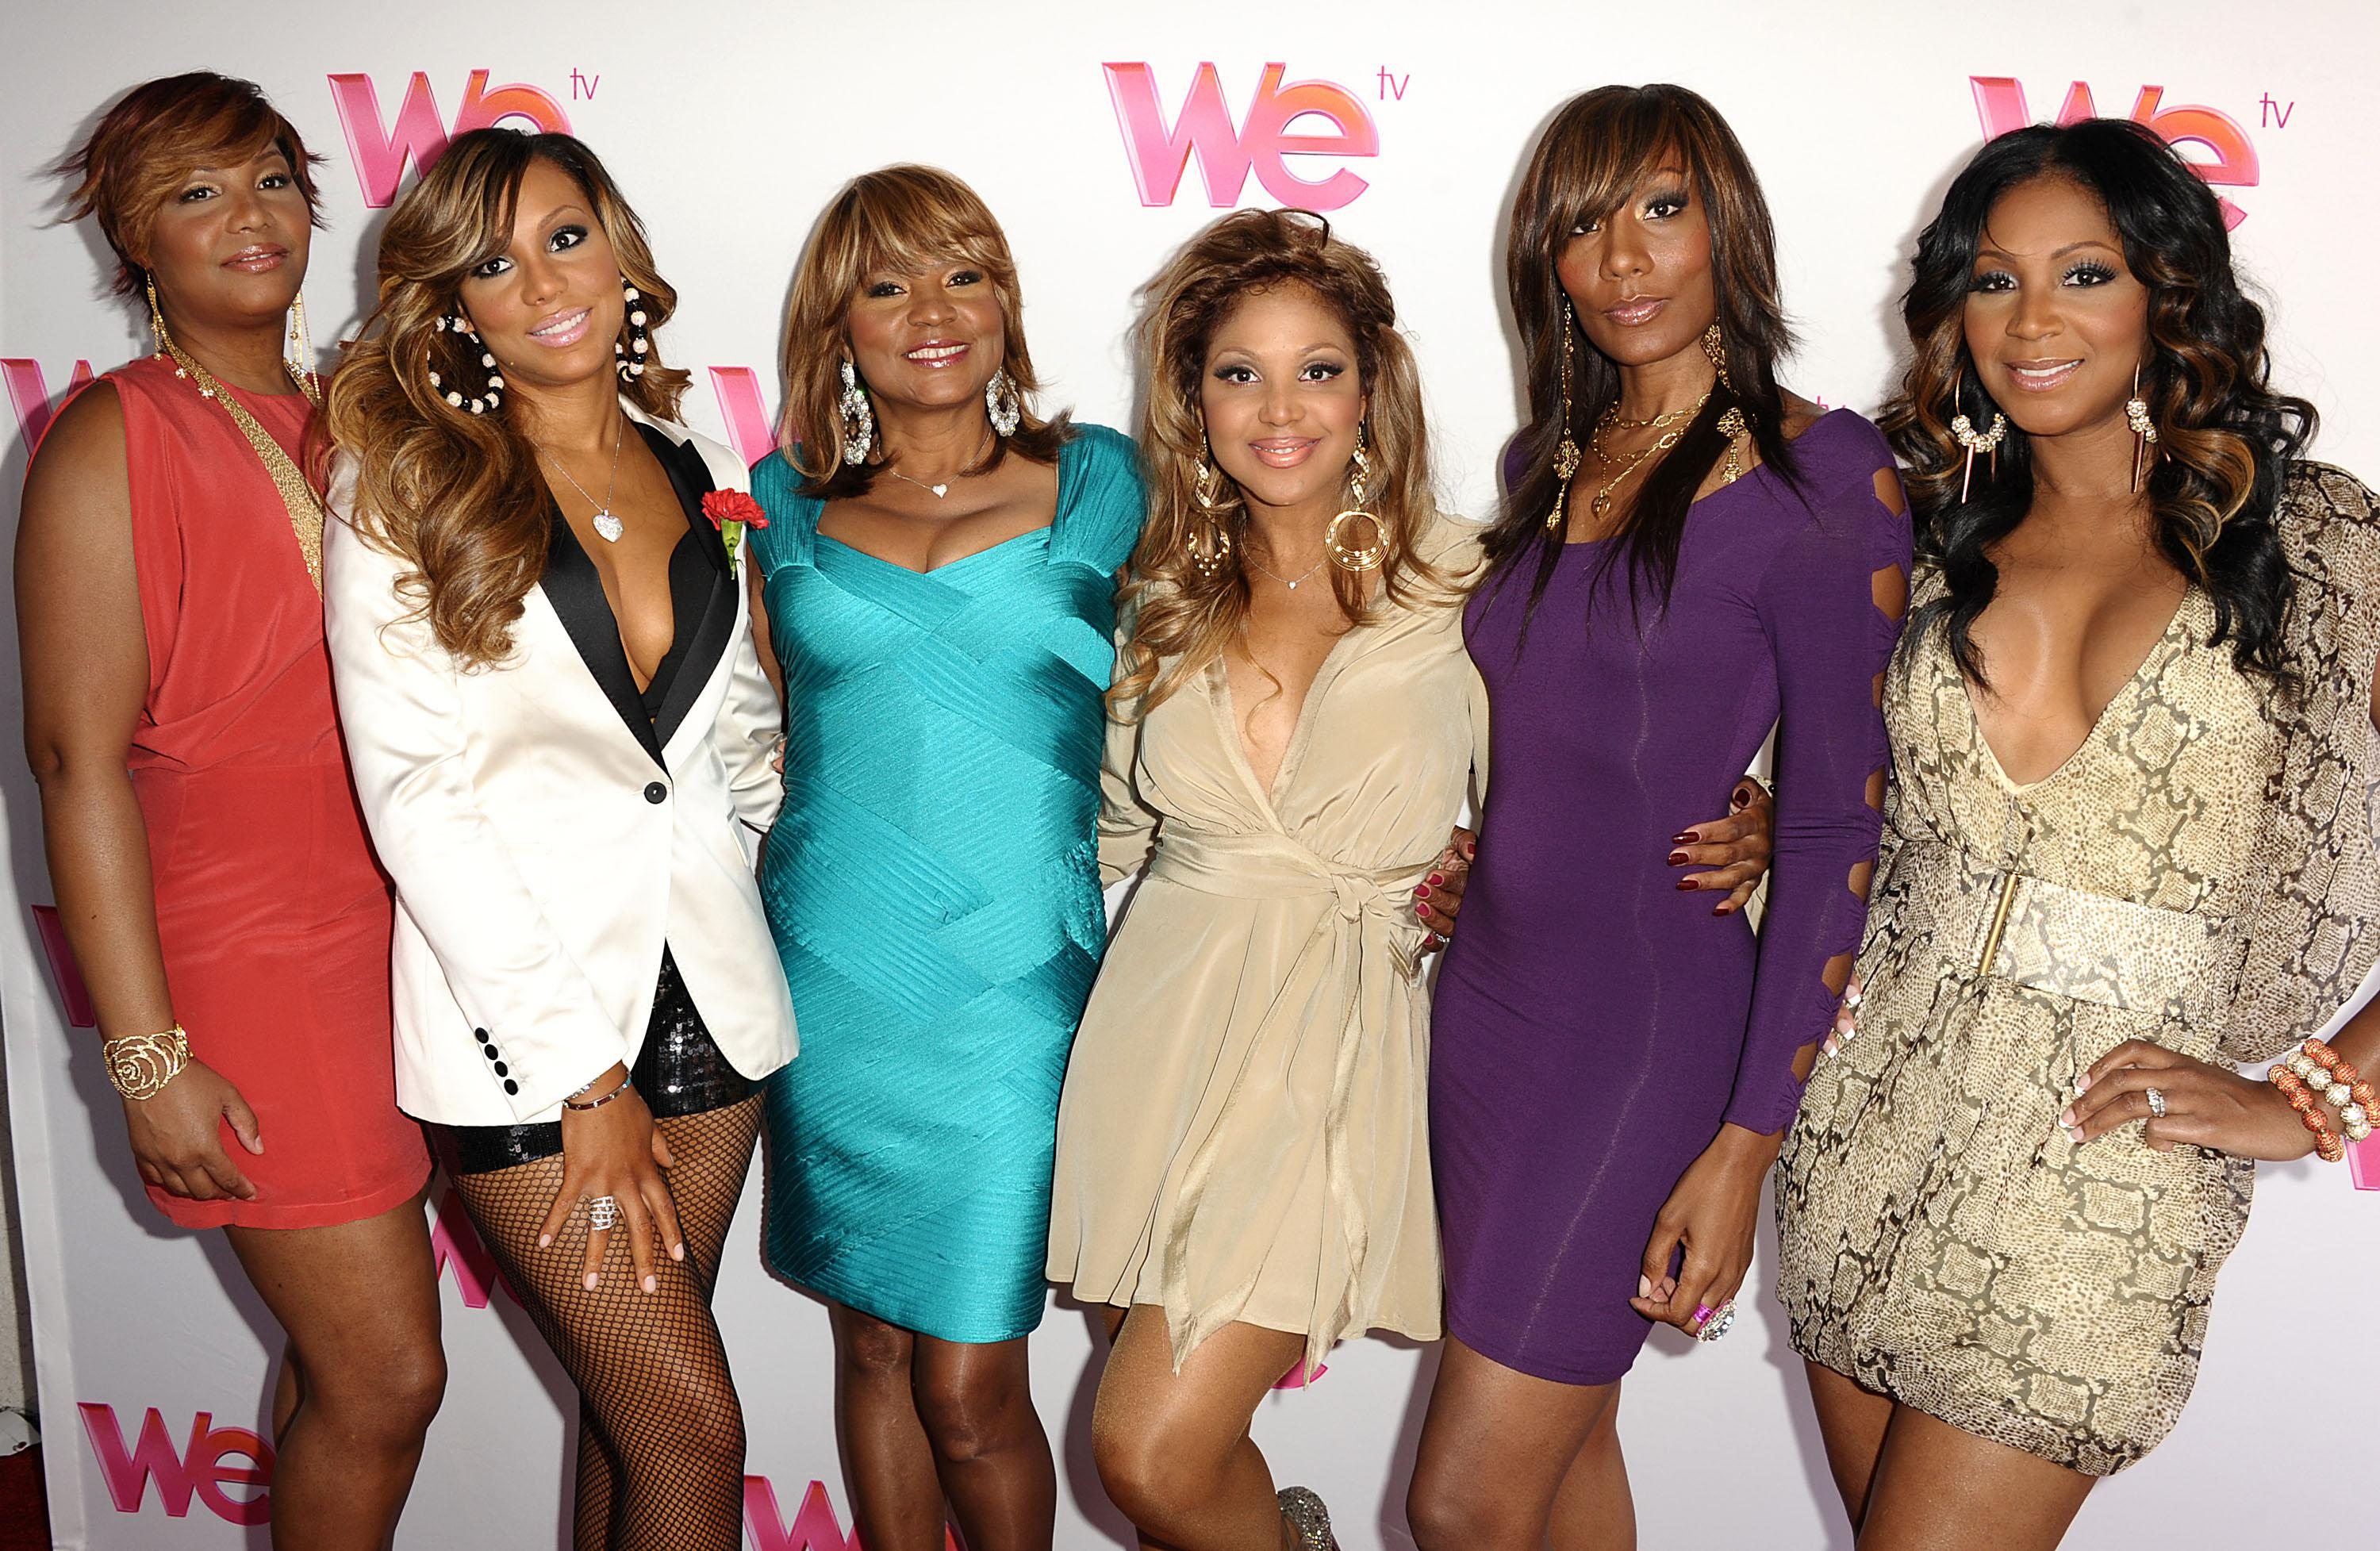 WE TV Series 'Braxton Family Values' - Reunion Special Taping